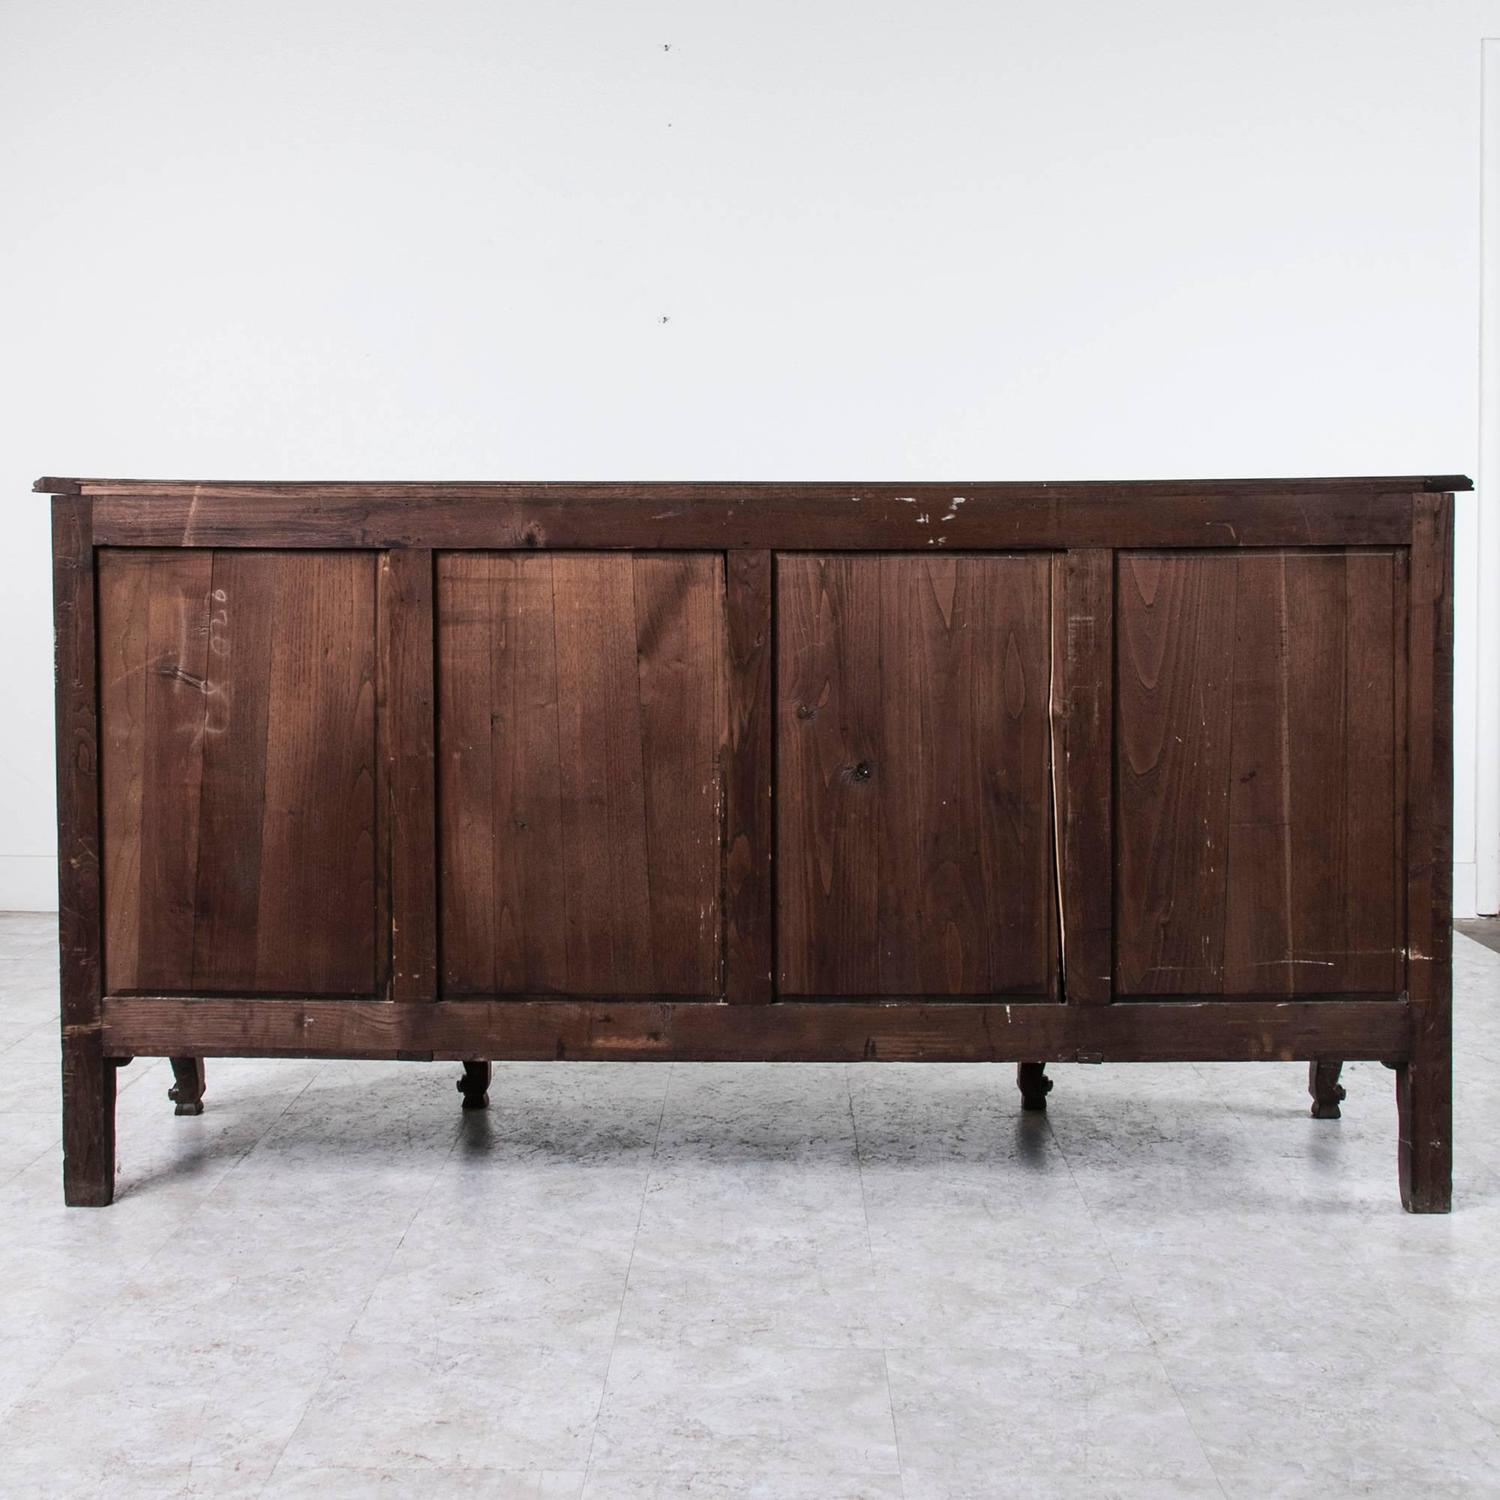 antique french louis xv style enfilade or buffet of hand carved solid oak for sale at 1stdibs. Black Bedroom Furniture Sets. Home Design Ideas